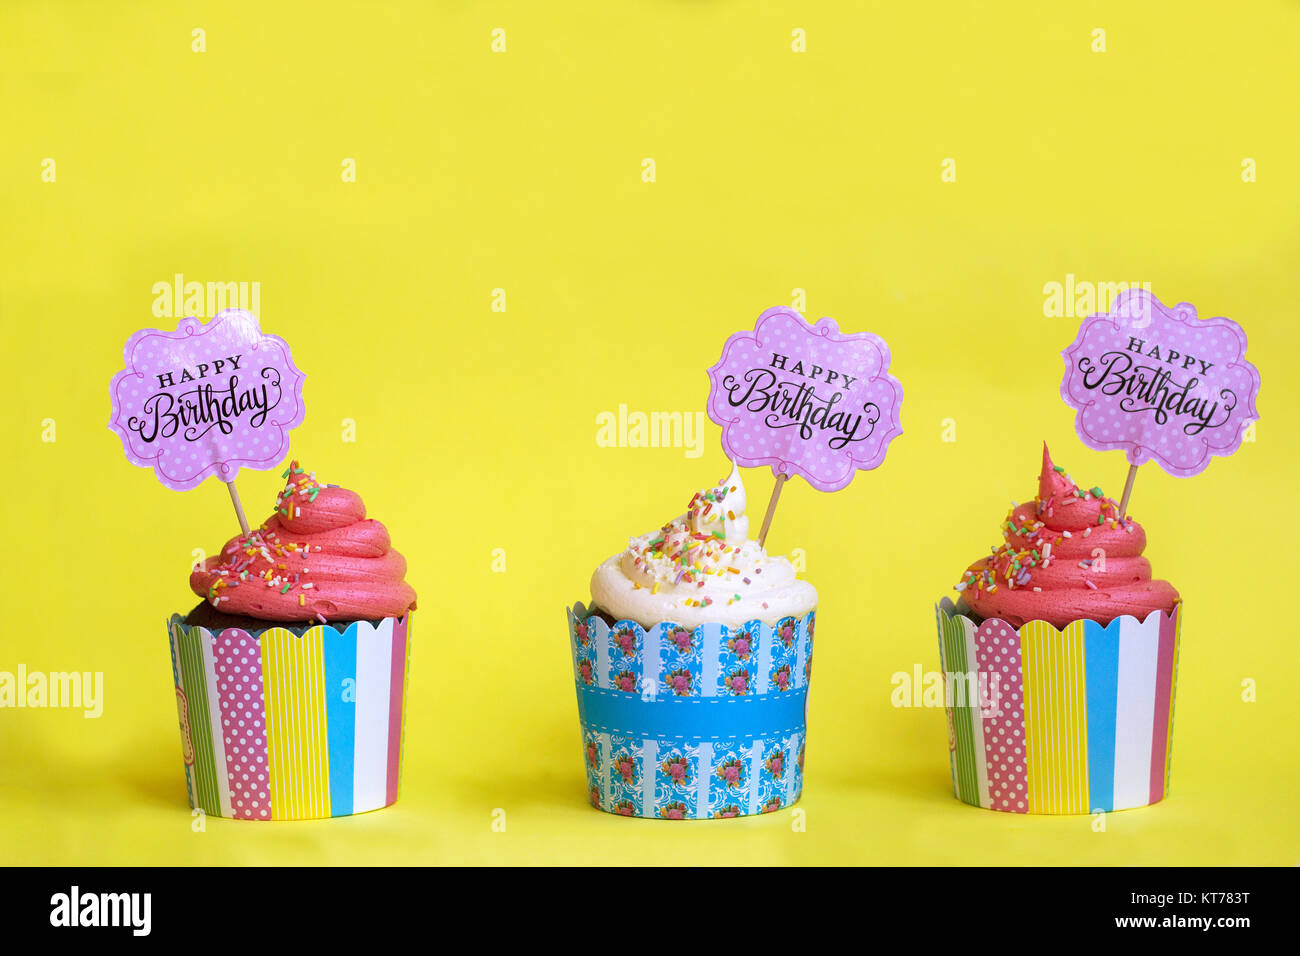 Three tasty strawberry cupcakes in colorful paper baking cups, with Happy Birthday greeting card, on yellow background. - Stock Image